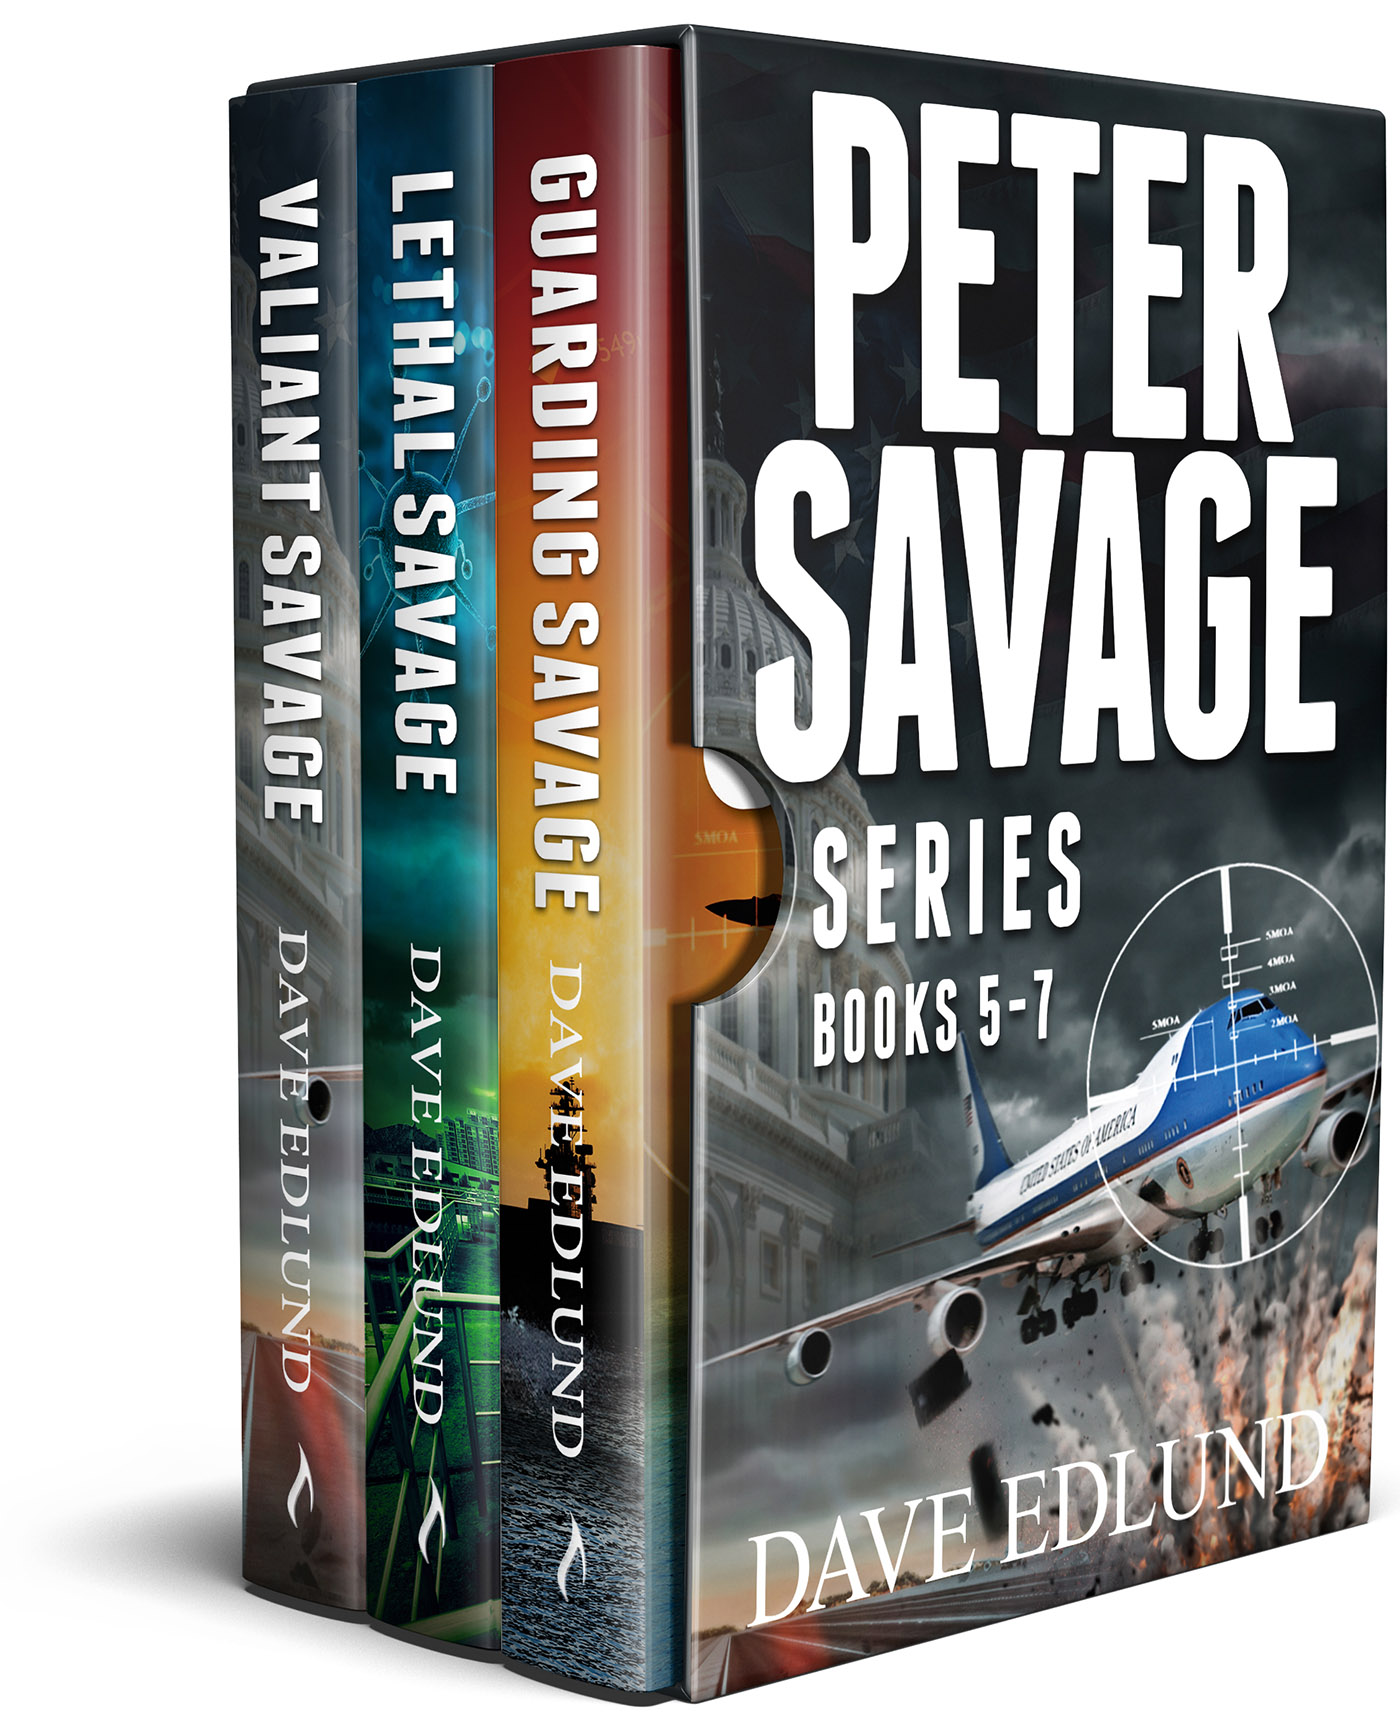 Peter Savage Boxed Series Books 5-7